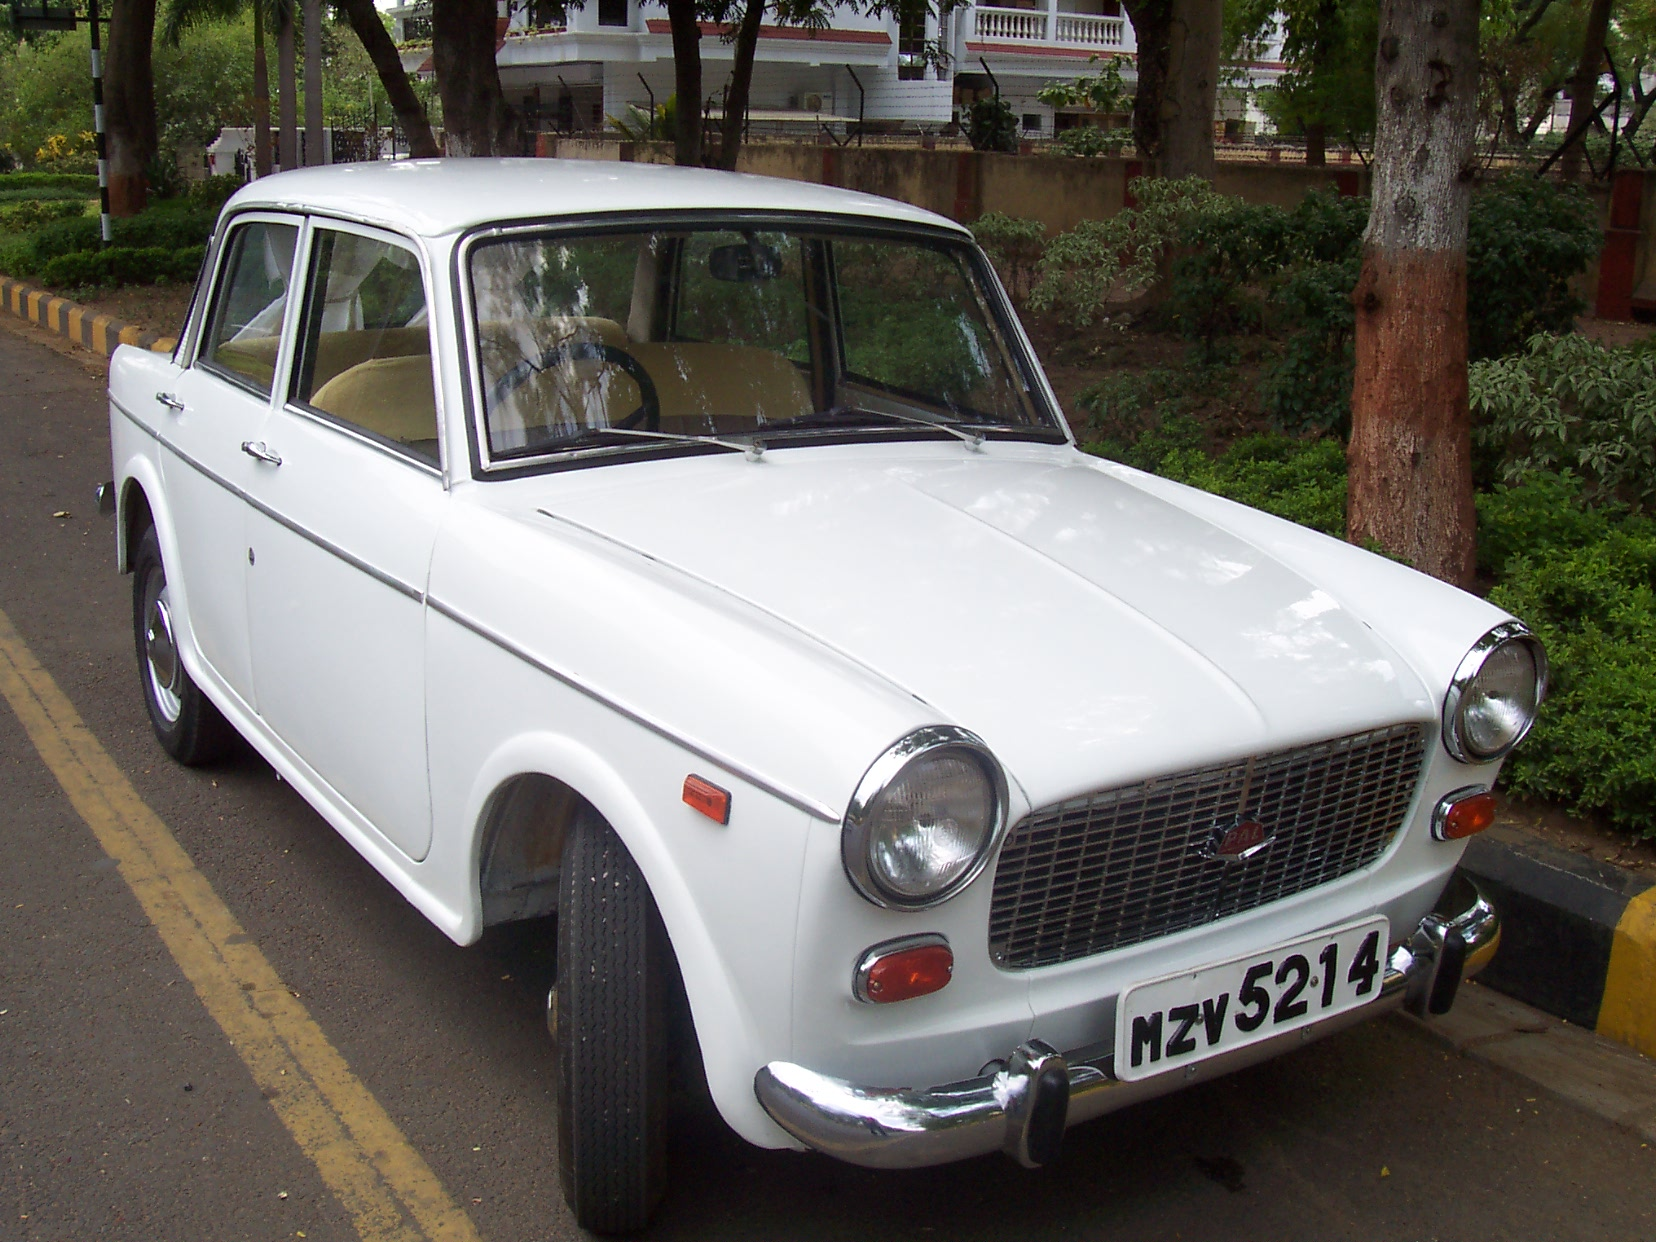 The Fiat 1100D based on the